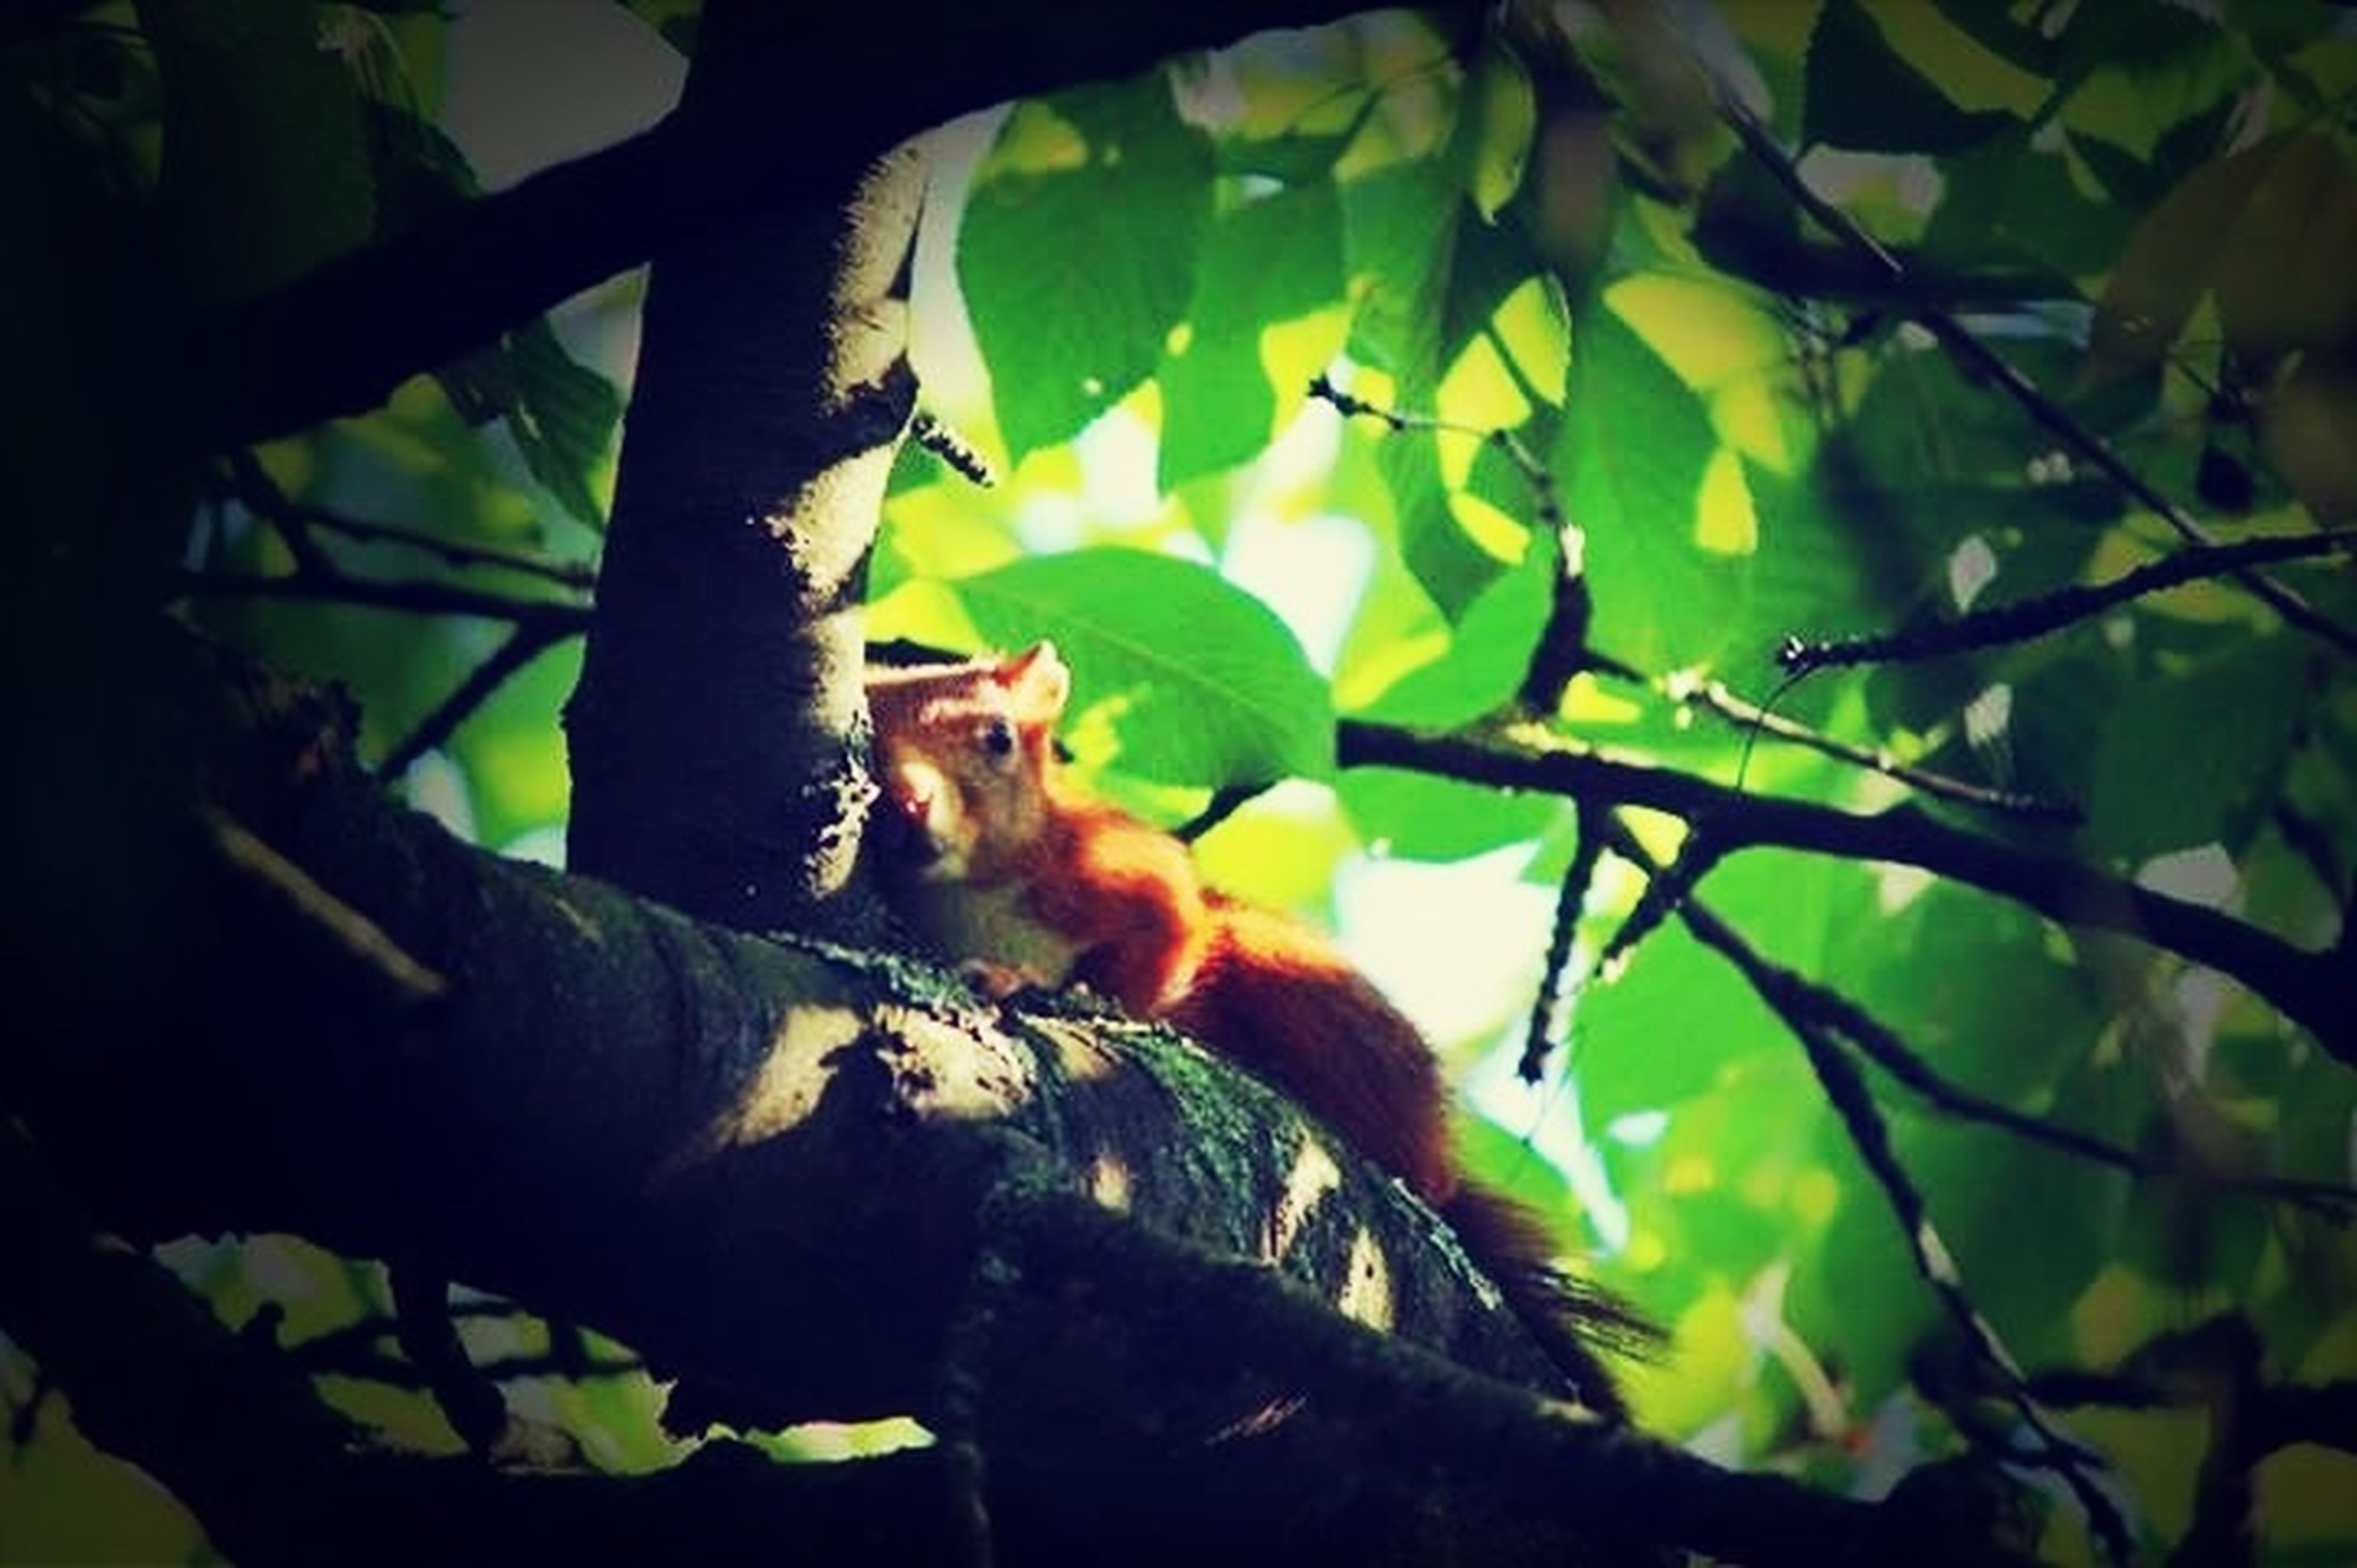 animal themes, one animal, tree, branch, mammal, low angle view, wildlife, animals in the wild, leaf, sitting, monkey, pets, domestic animals, nature, vertebrate, day, no people, zoology, tree trunk, outdoors